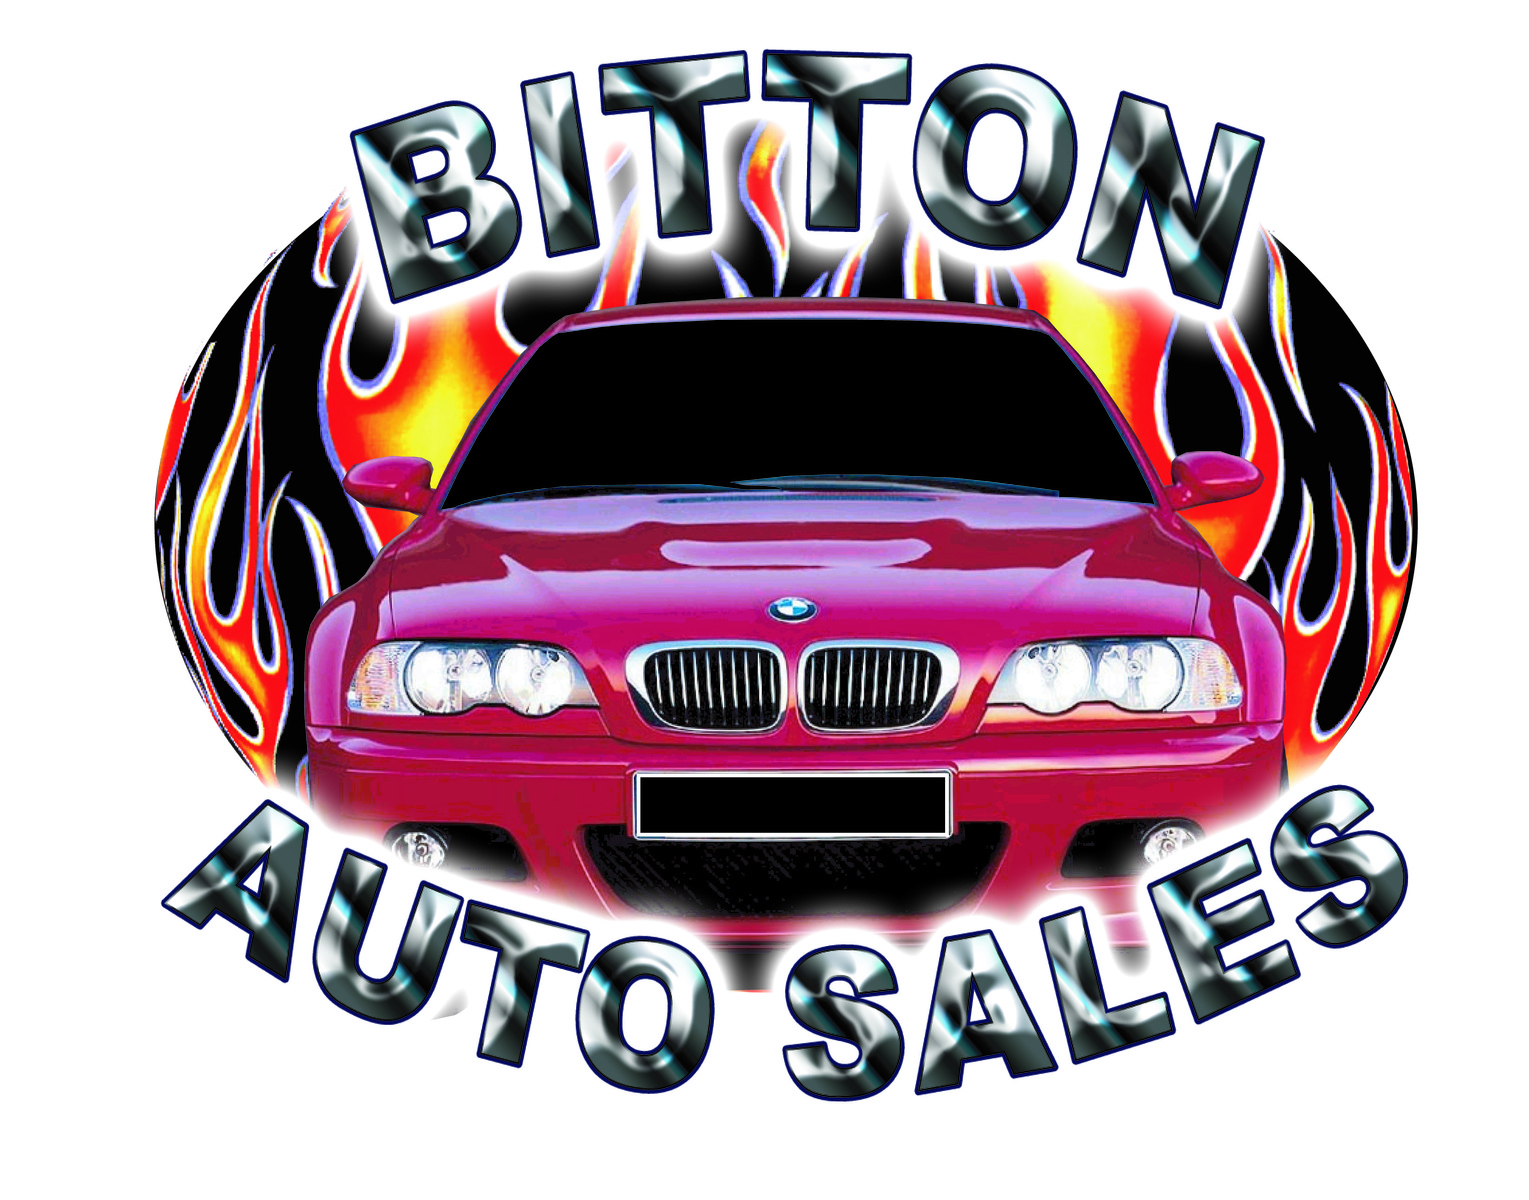 bitton 39 s auto sales ogden ut read consumer reviews browse used and new cars for sale. Black Bedroom Furniture Sets. Home Design Ideas